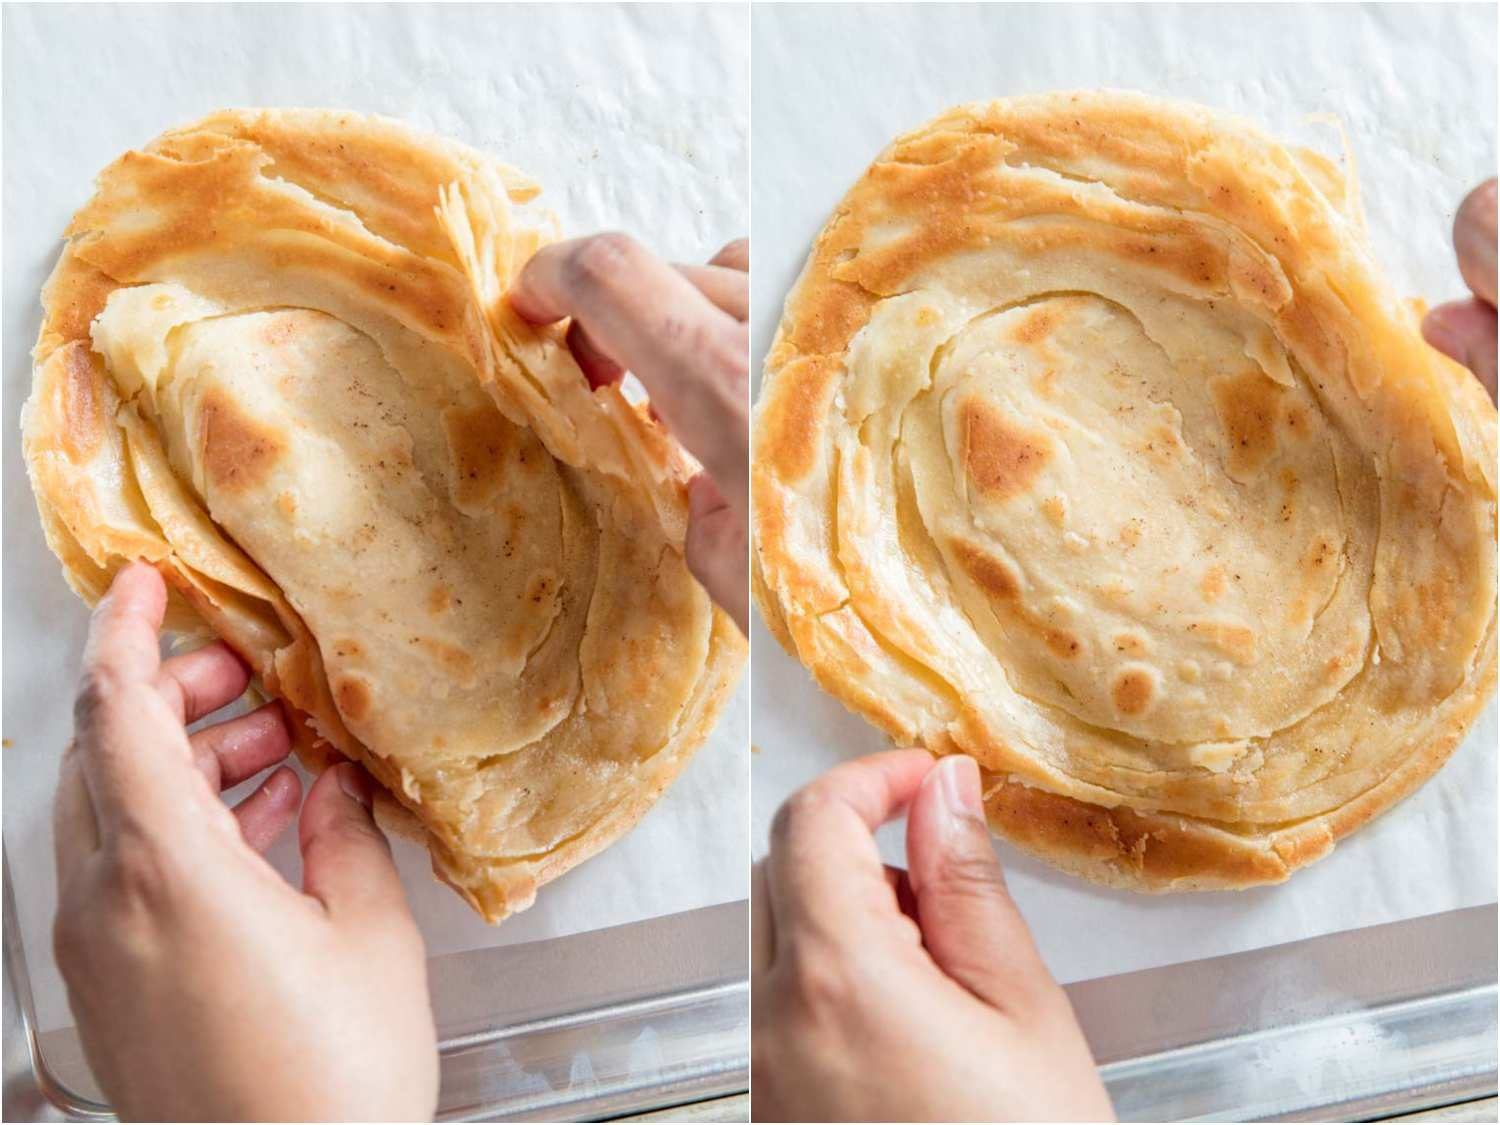 Two hands on the sides of a cooked paratha, scrunching it gently to release steam